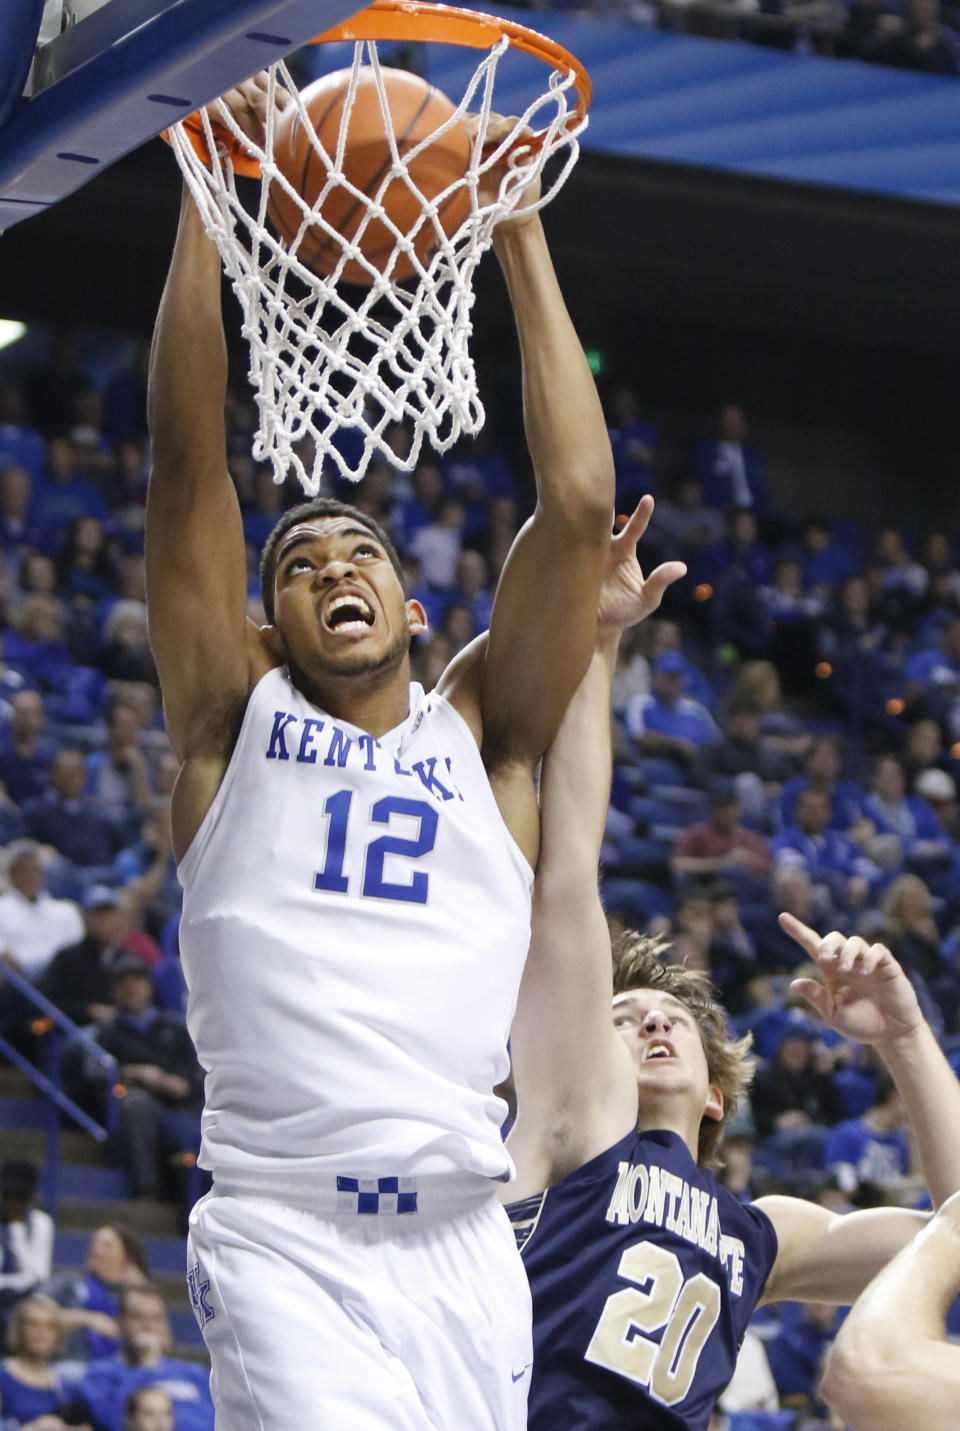 Kentucky's Karl-Anthony Towns (12) dunks next to Montana State's Ryan Shannon during the second half of an NCAA college basketball game, Sunday, Nov. 23, 2014, in Lexington, Ky. Kentucky won 86-28. (AP Photo/James Crisp)